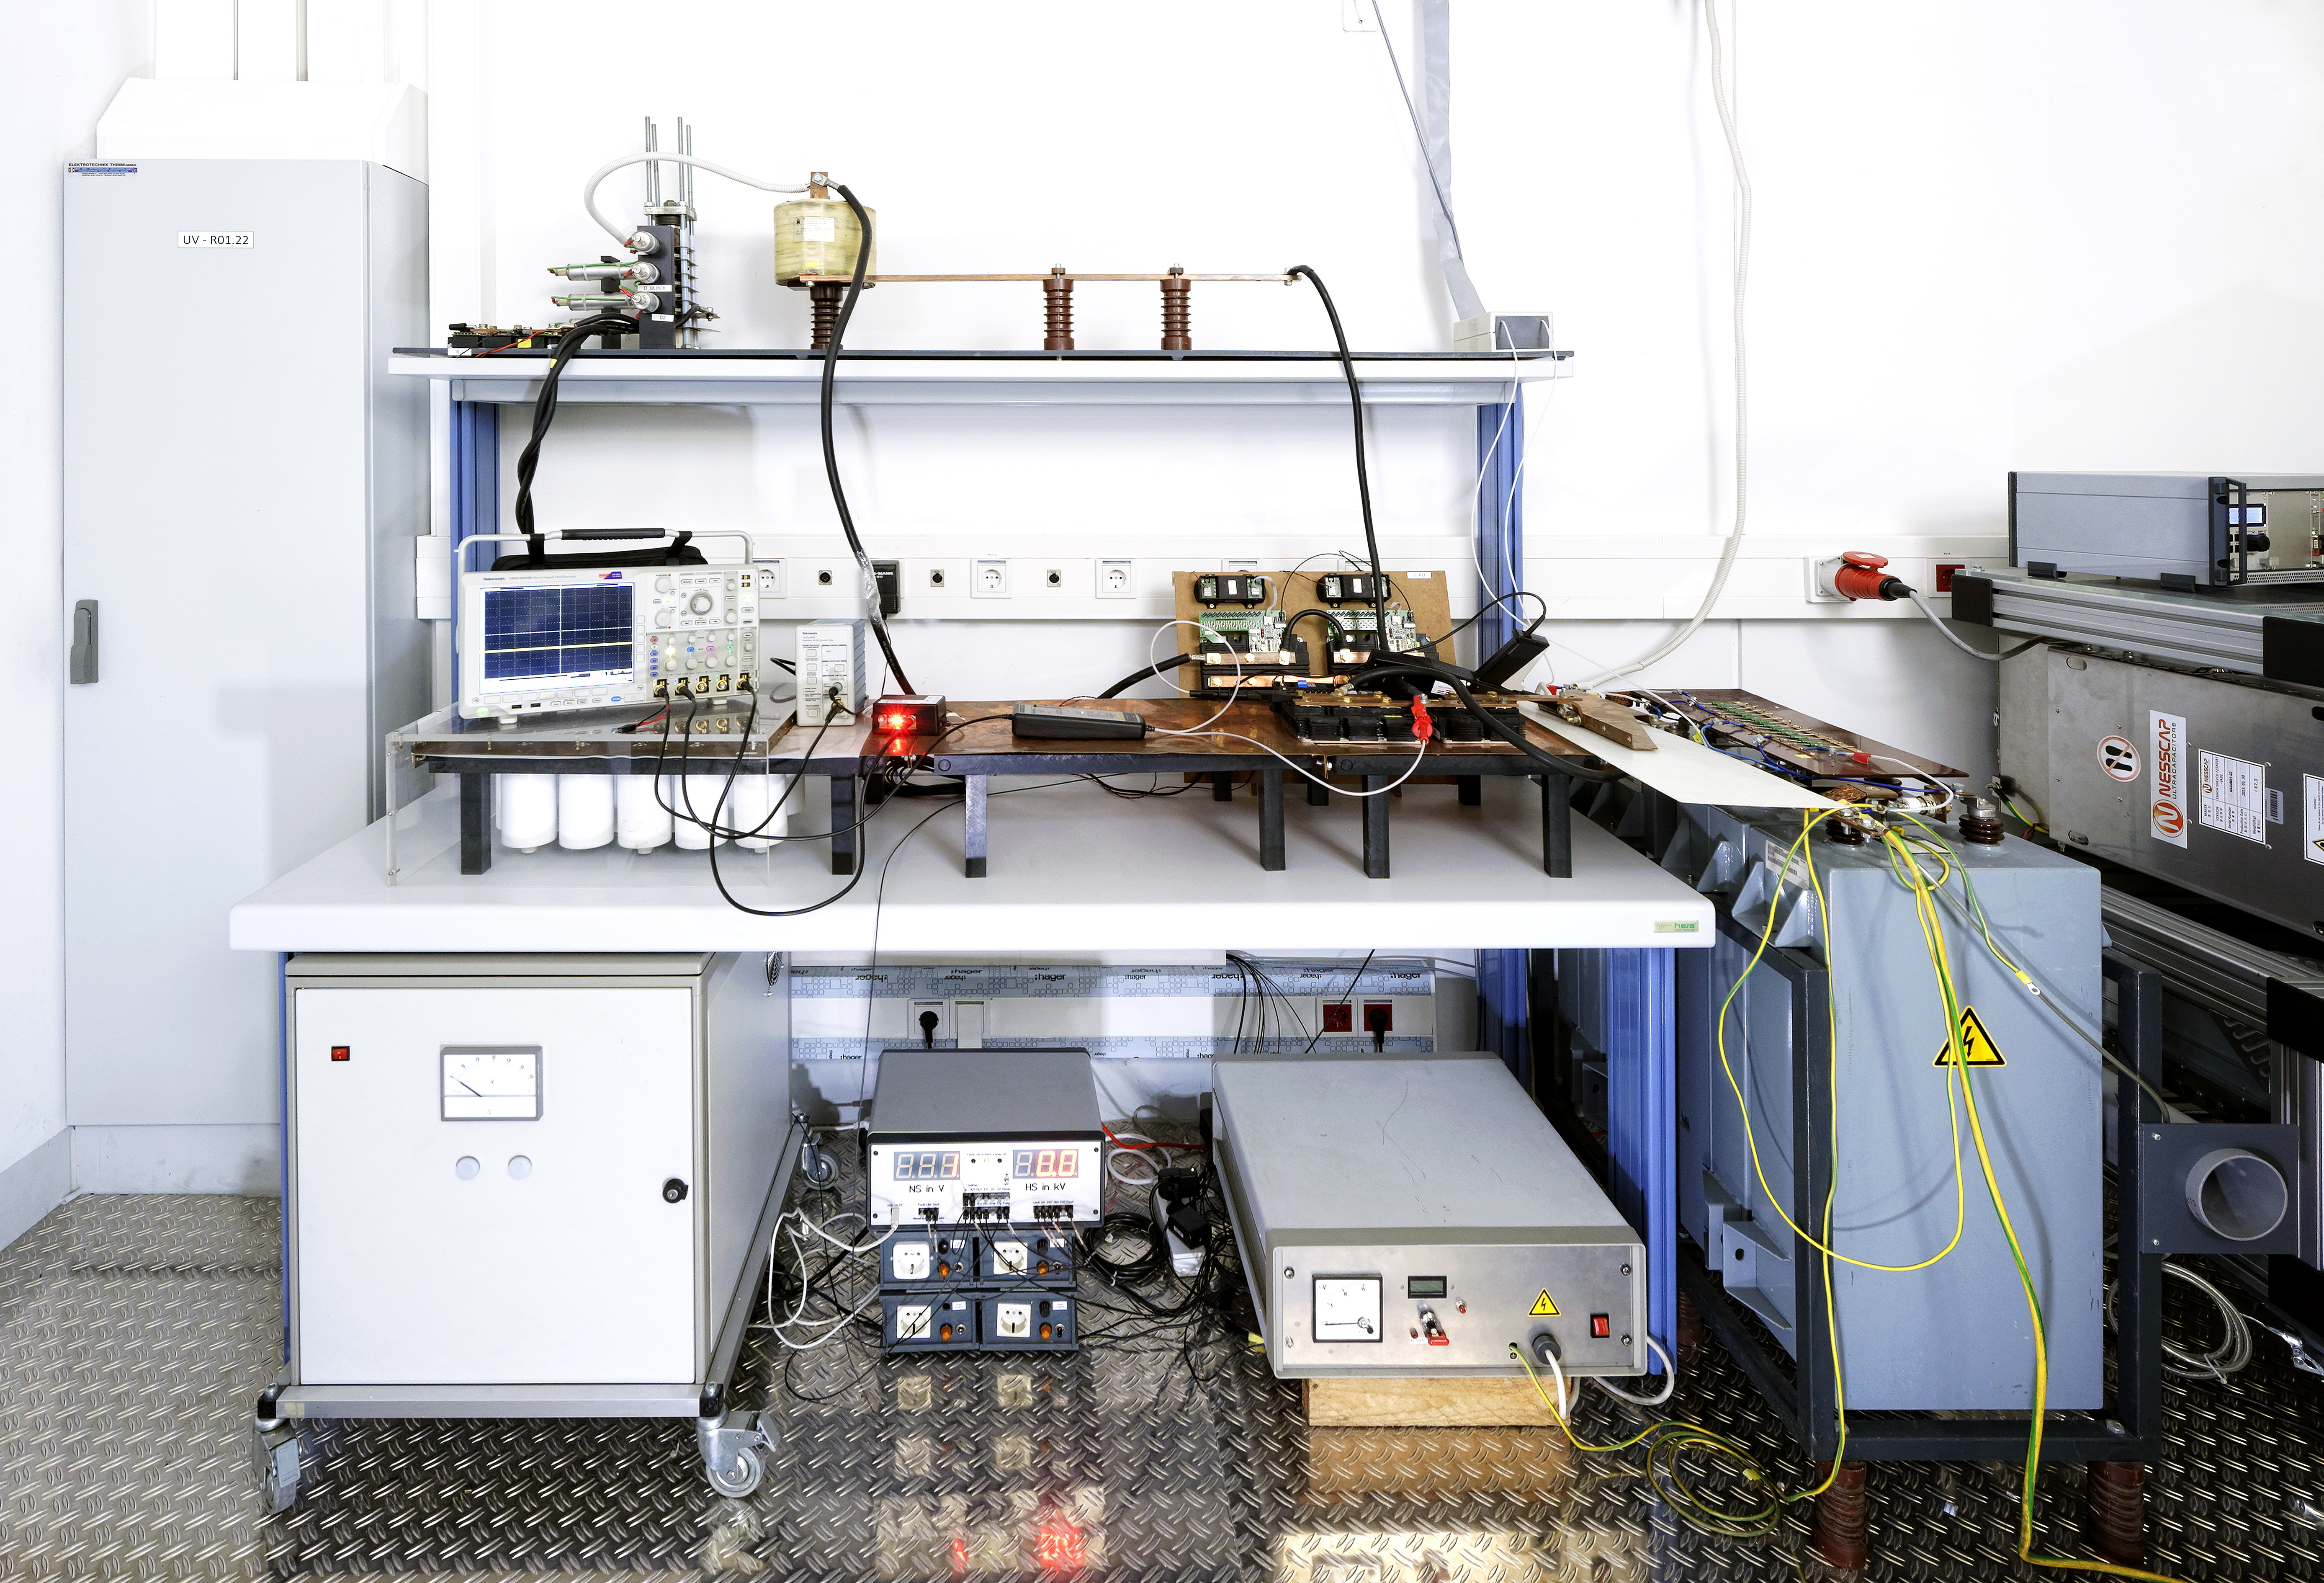 Test Bench for Power-Electronic Devices